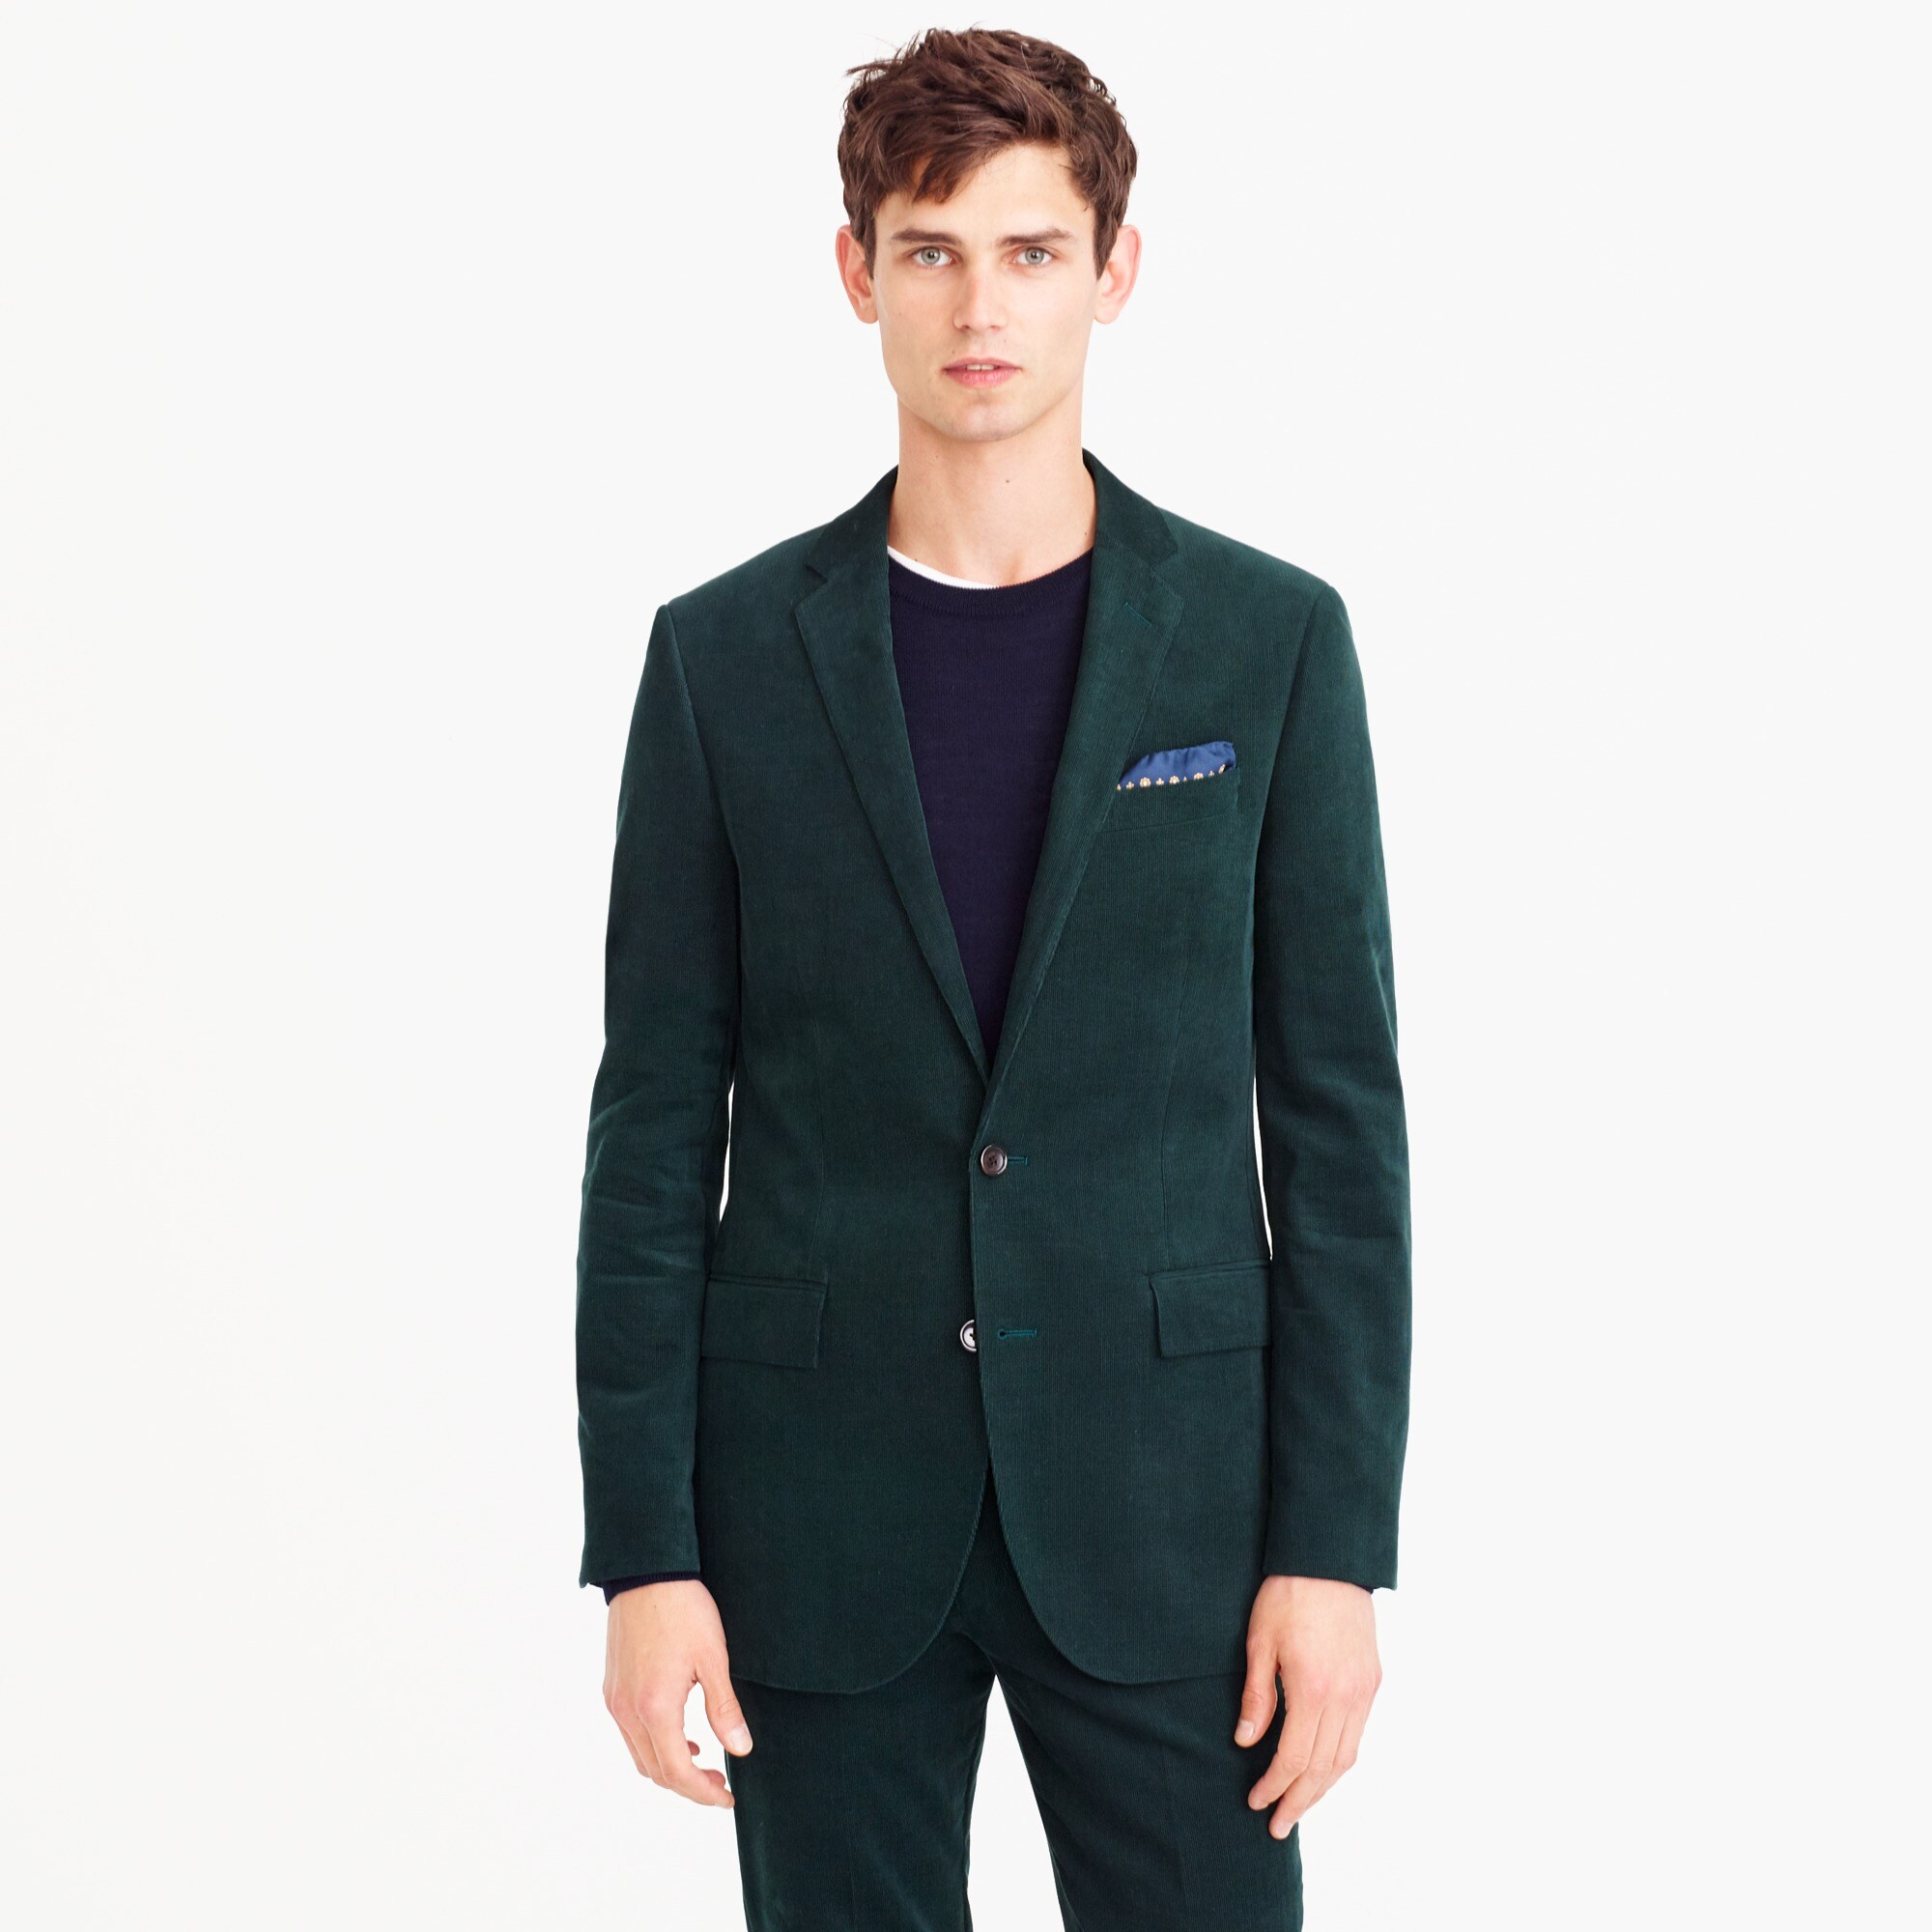 Ludlow suit jacket in Italian cotton corduroy